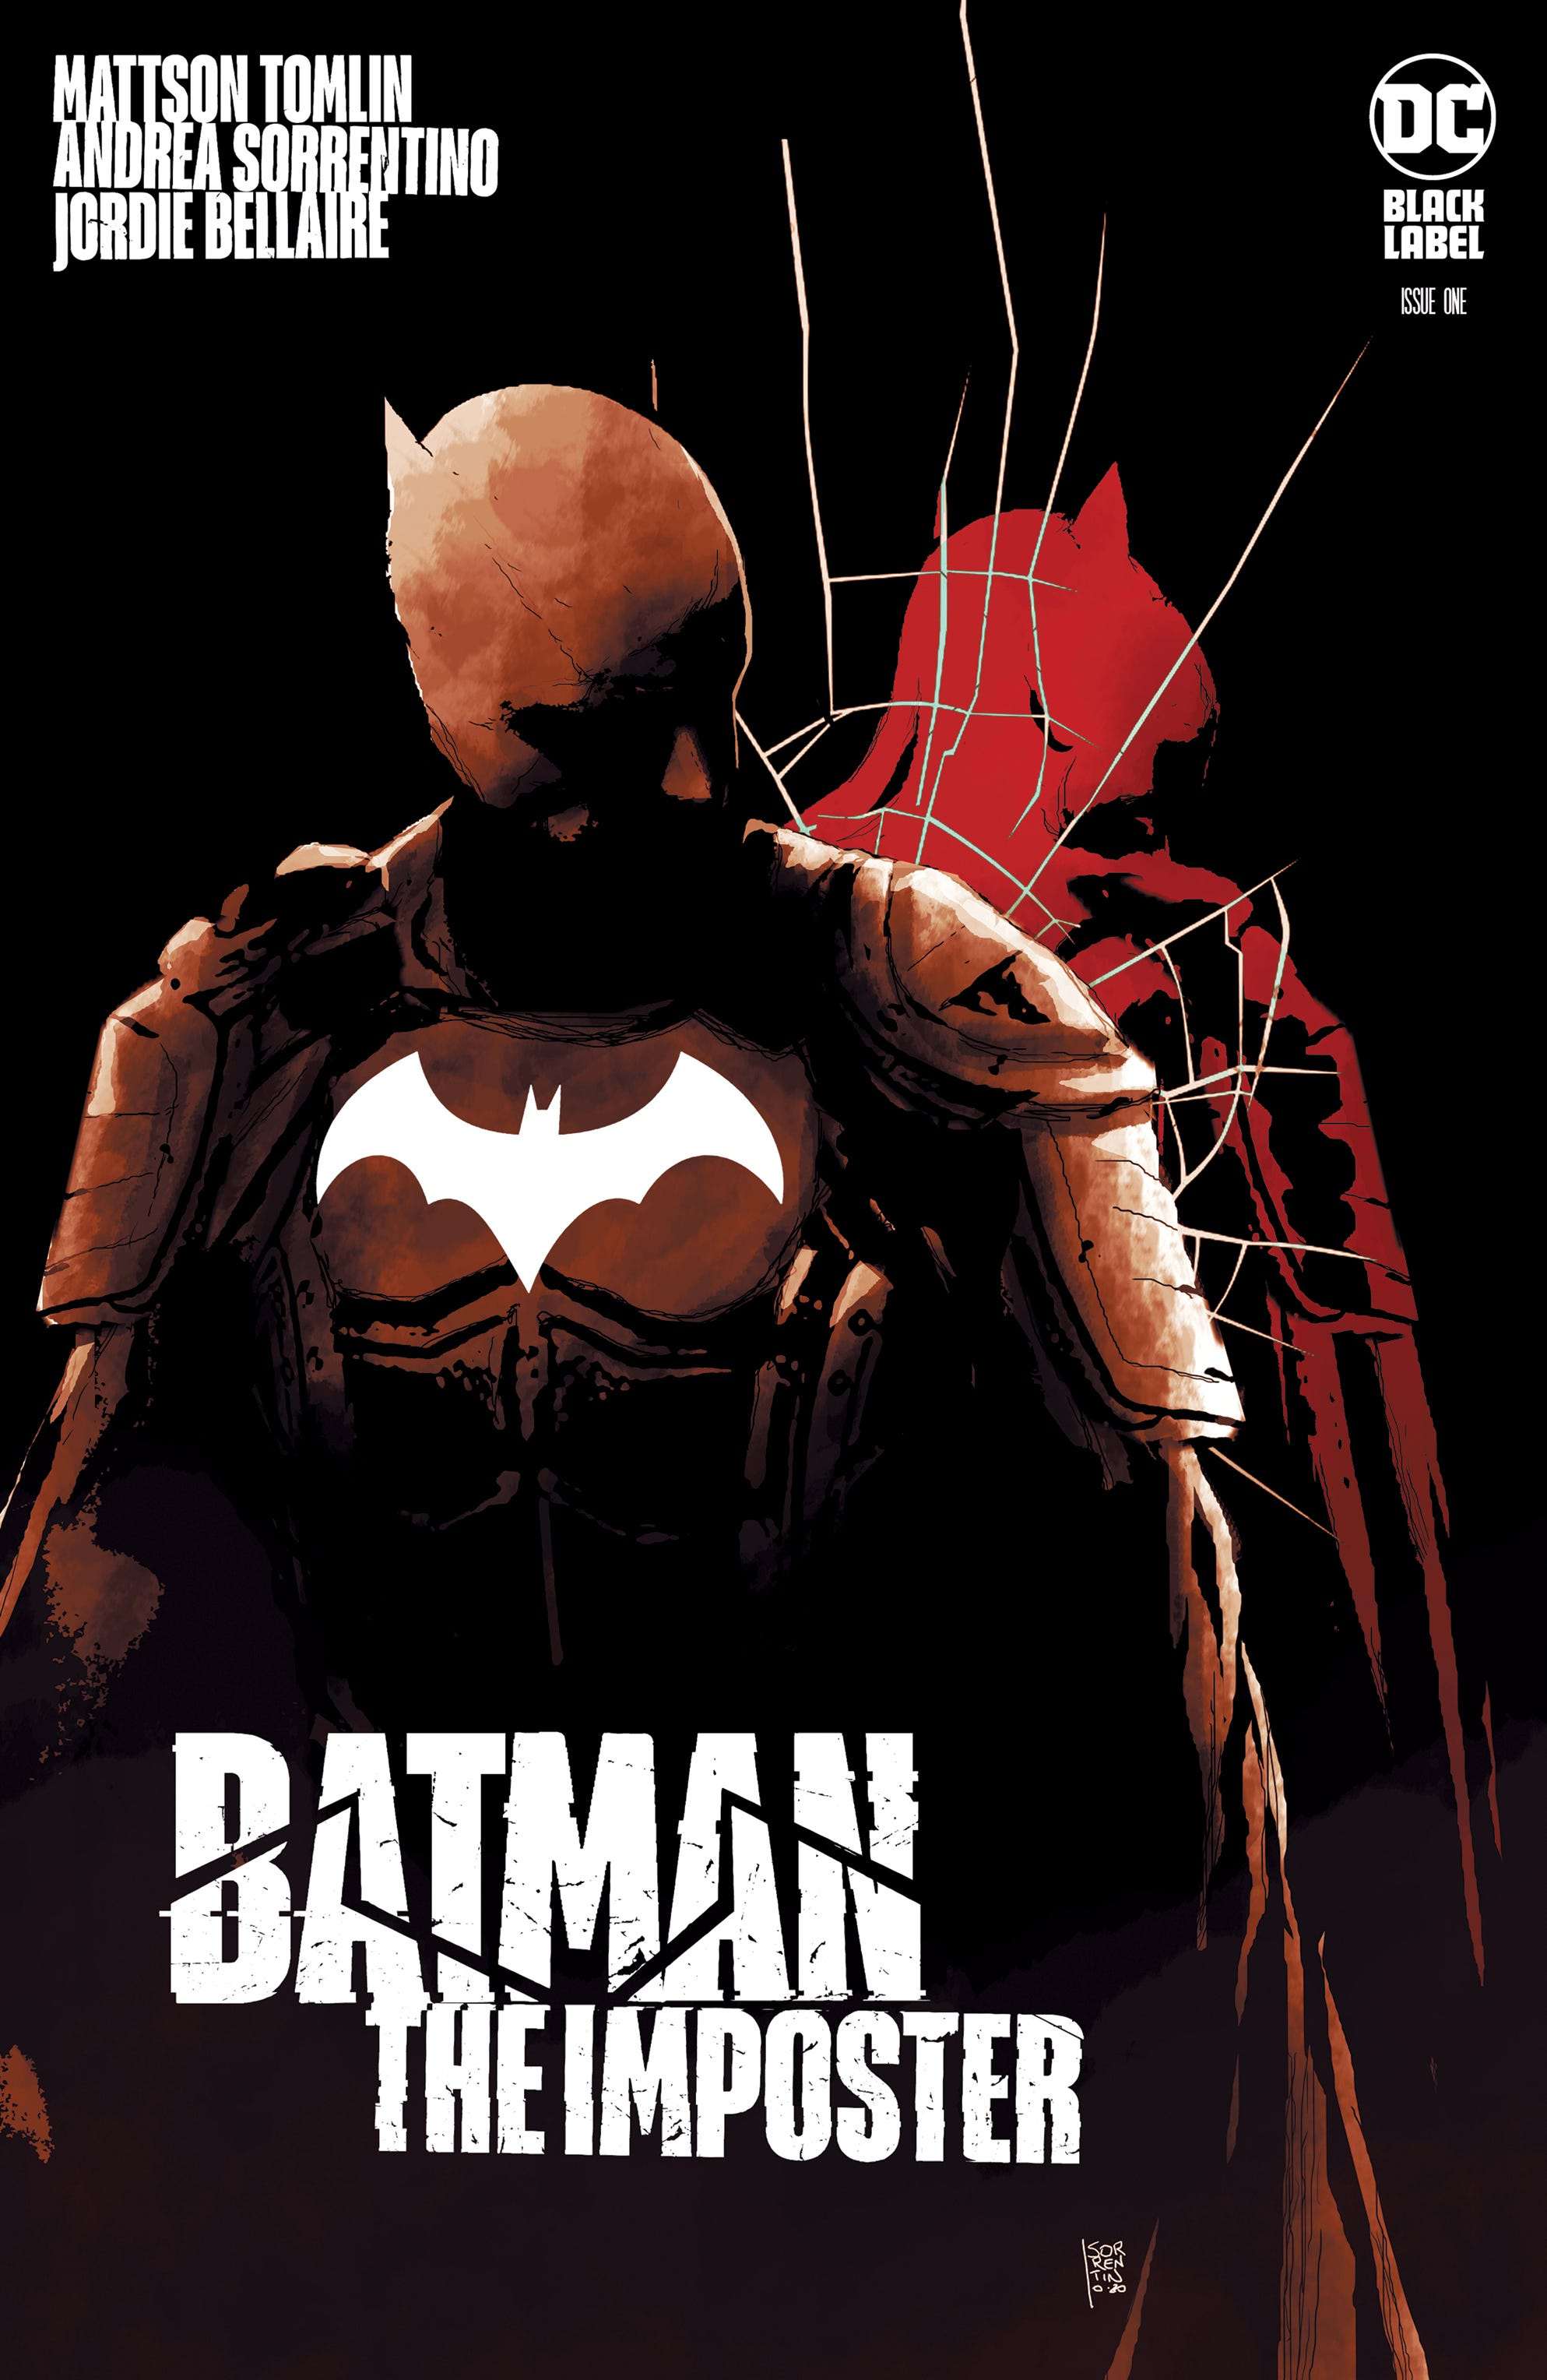 Batman the Imposter #1 (of 3) (Cover A - Andrea Sorrentino)